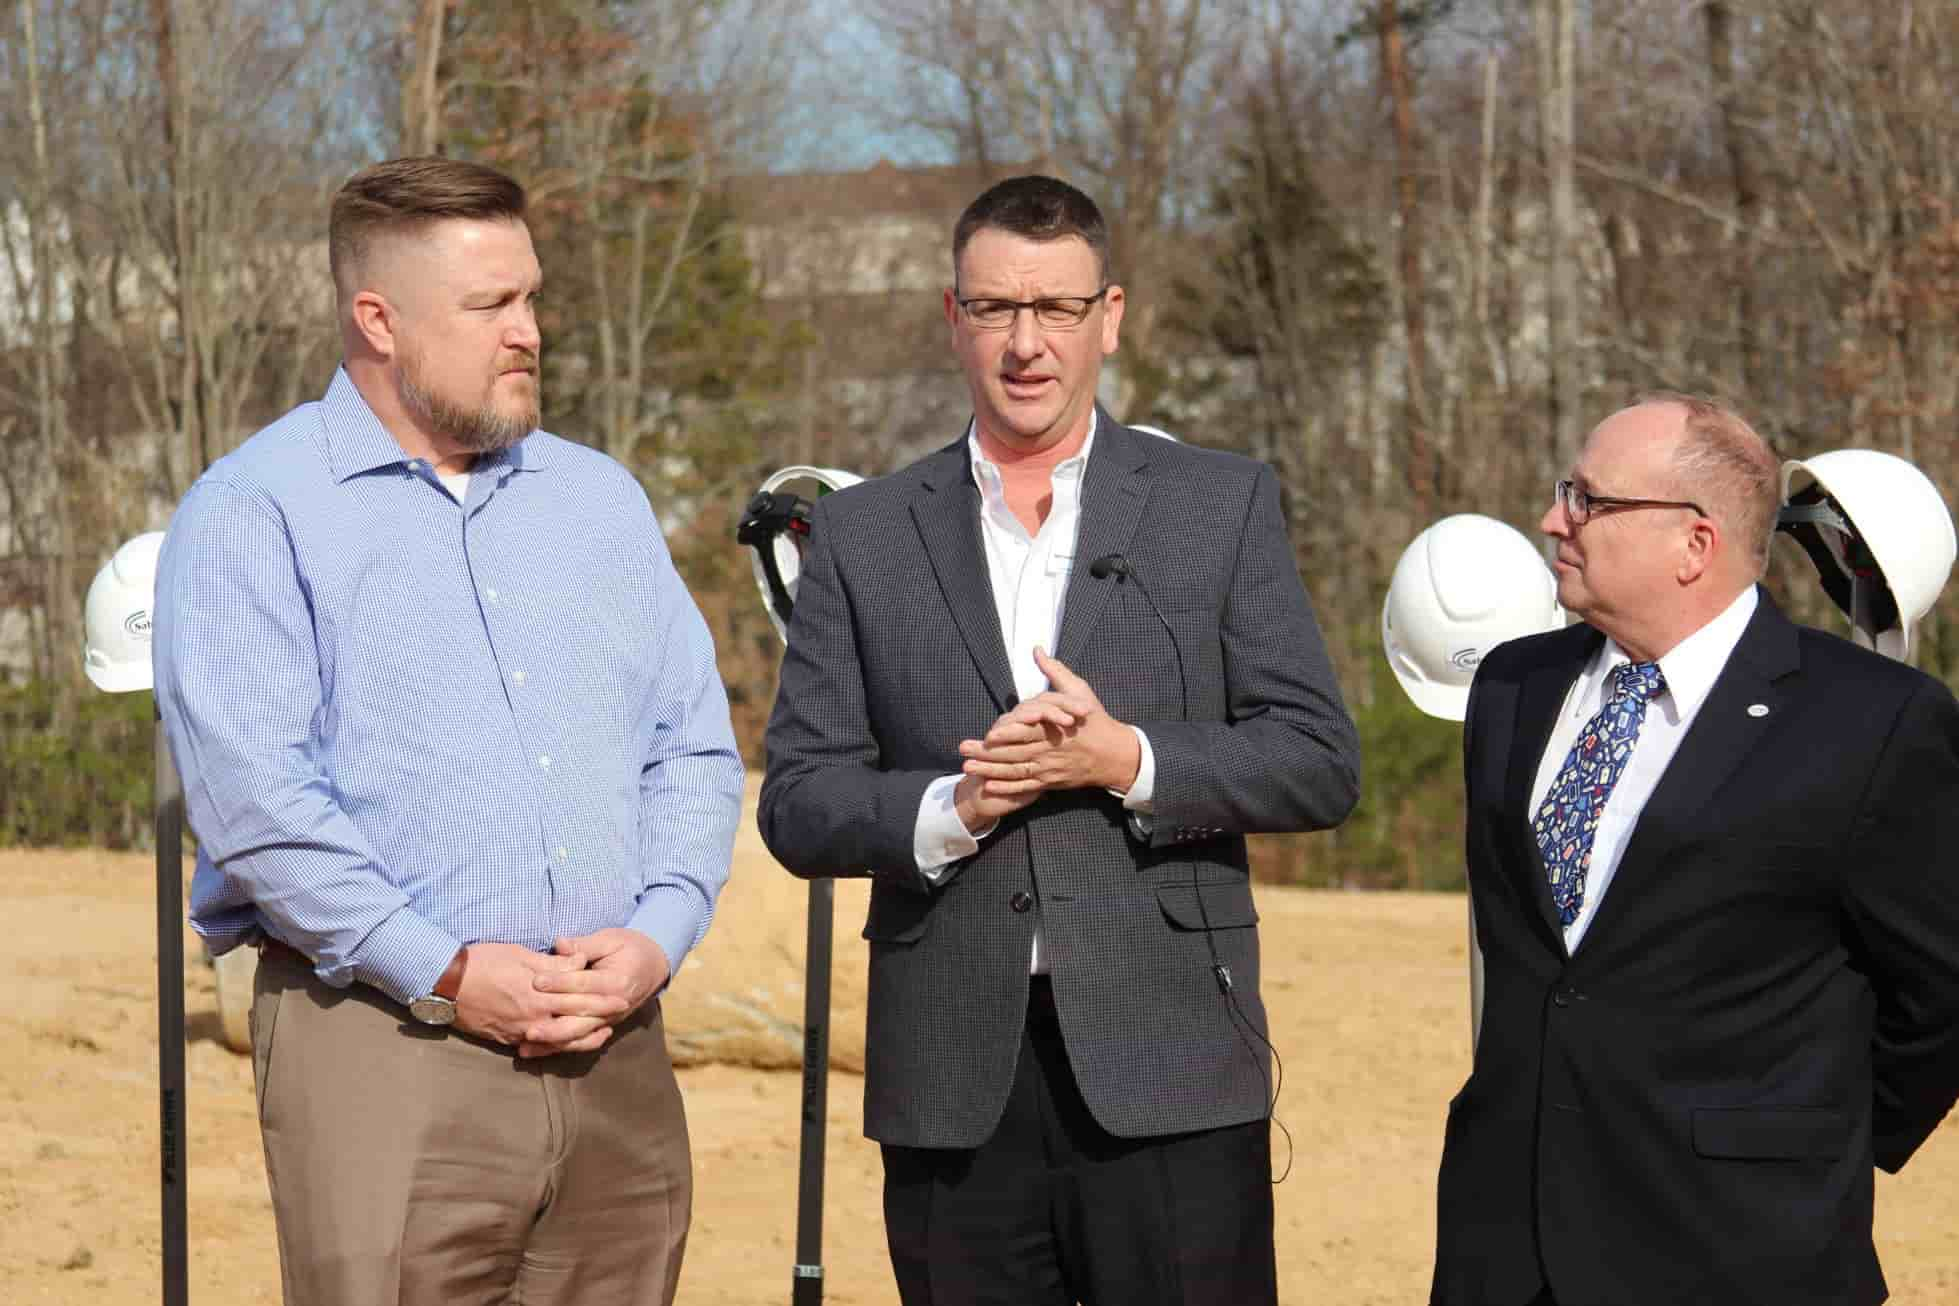 Executives from Saber Healthcare Group joined local officials to break ground on Saber's new healthcare facility, Berea Health & Rehabilitation Center, in Fredericksburg.